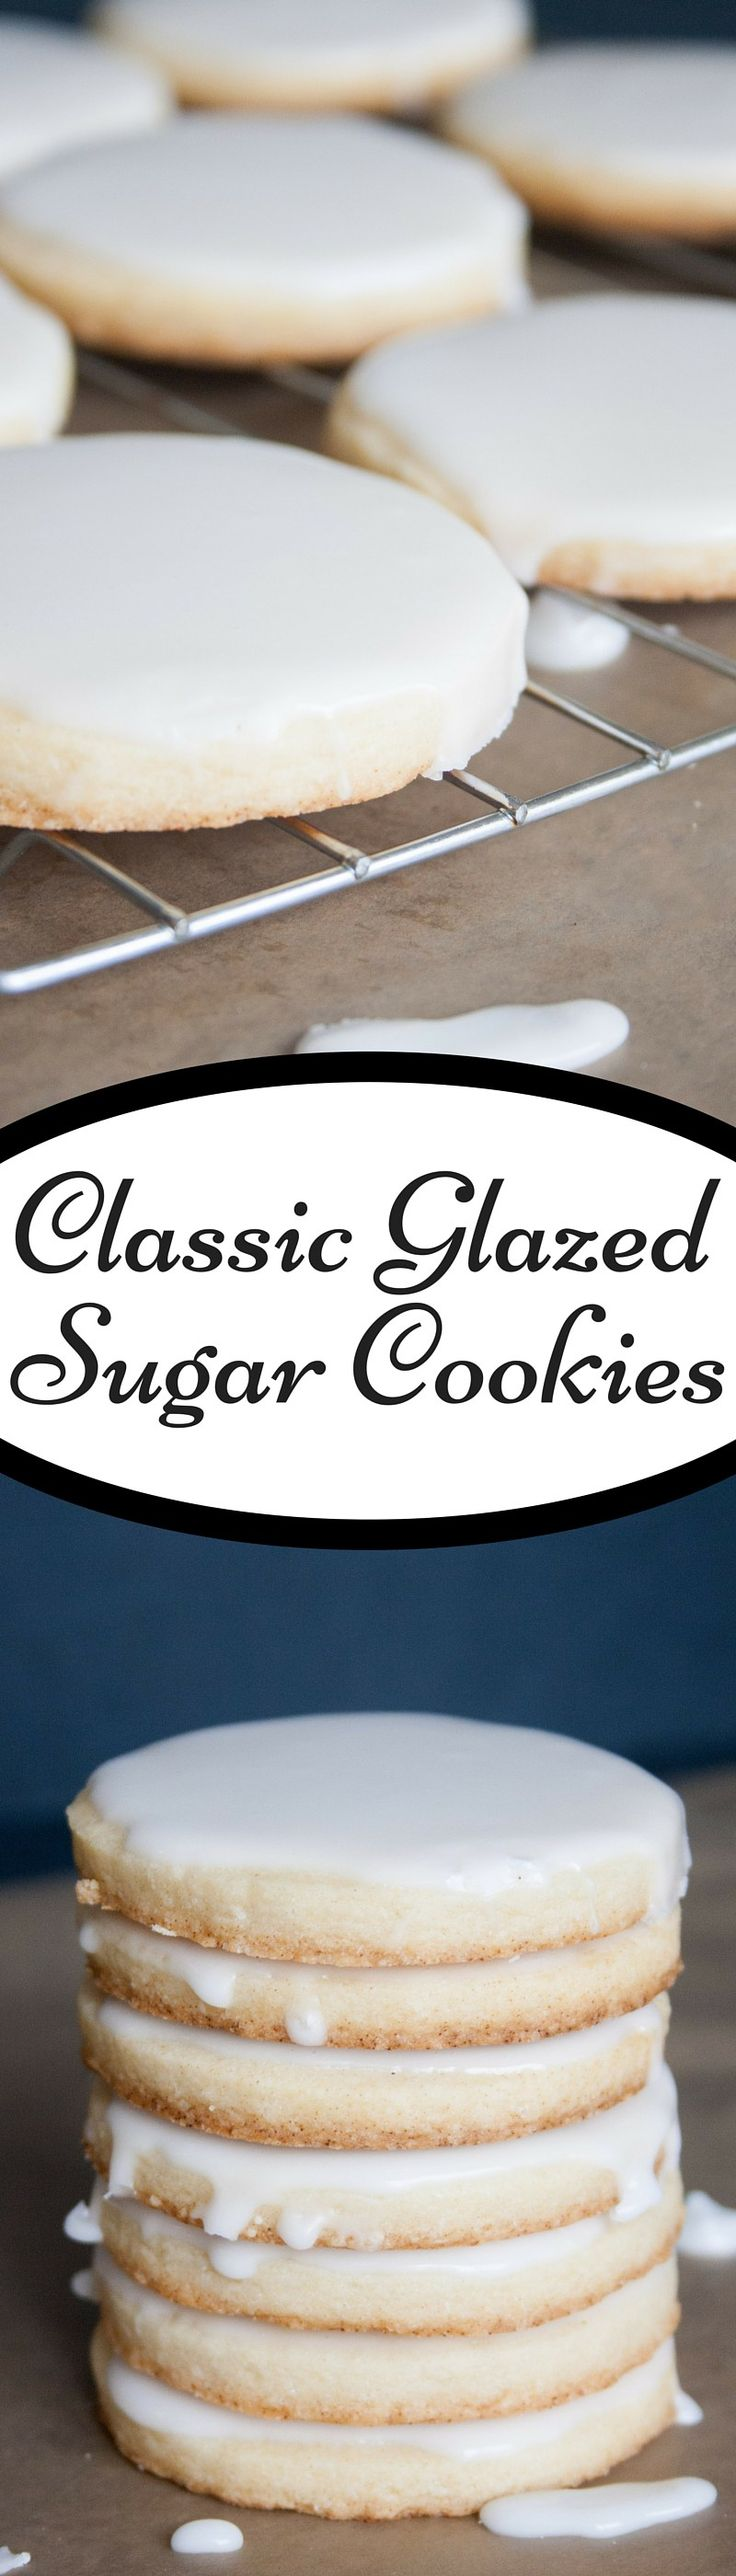 Classic Glazed Sugar Cookies.  Soft and thick sugar cookies topped with a glaze that gardens and stays shiny.  Melt in your mouth delicious and seriously the best sugar cookies you'll ever have!